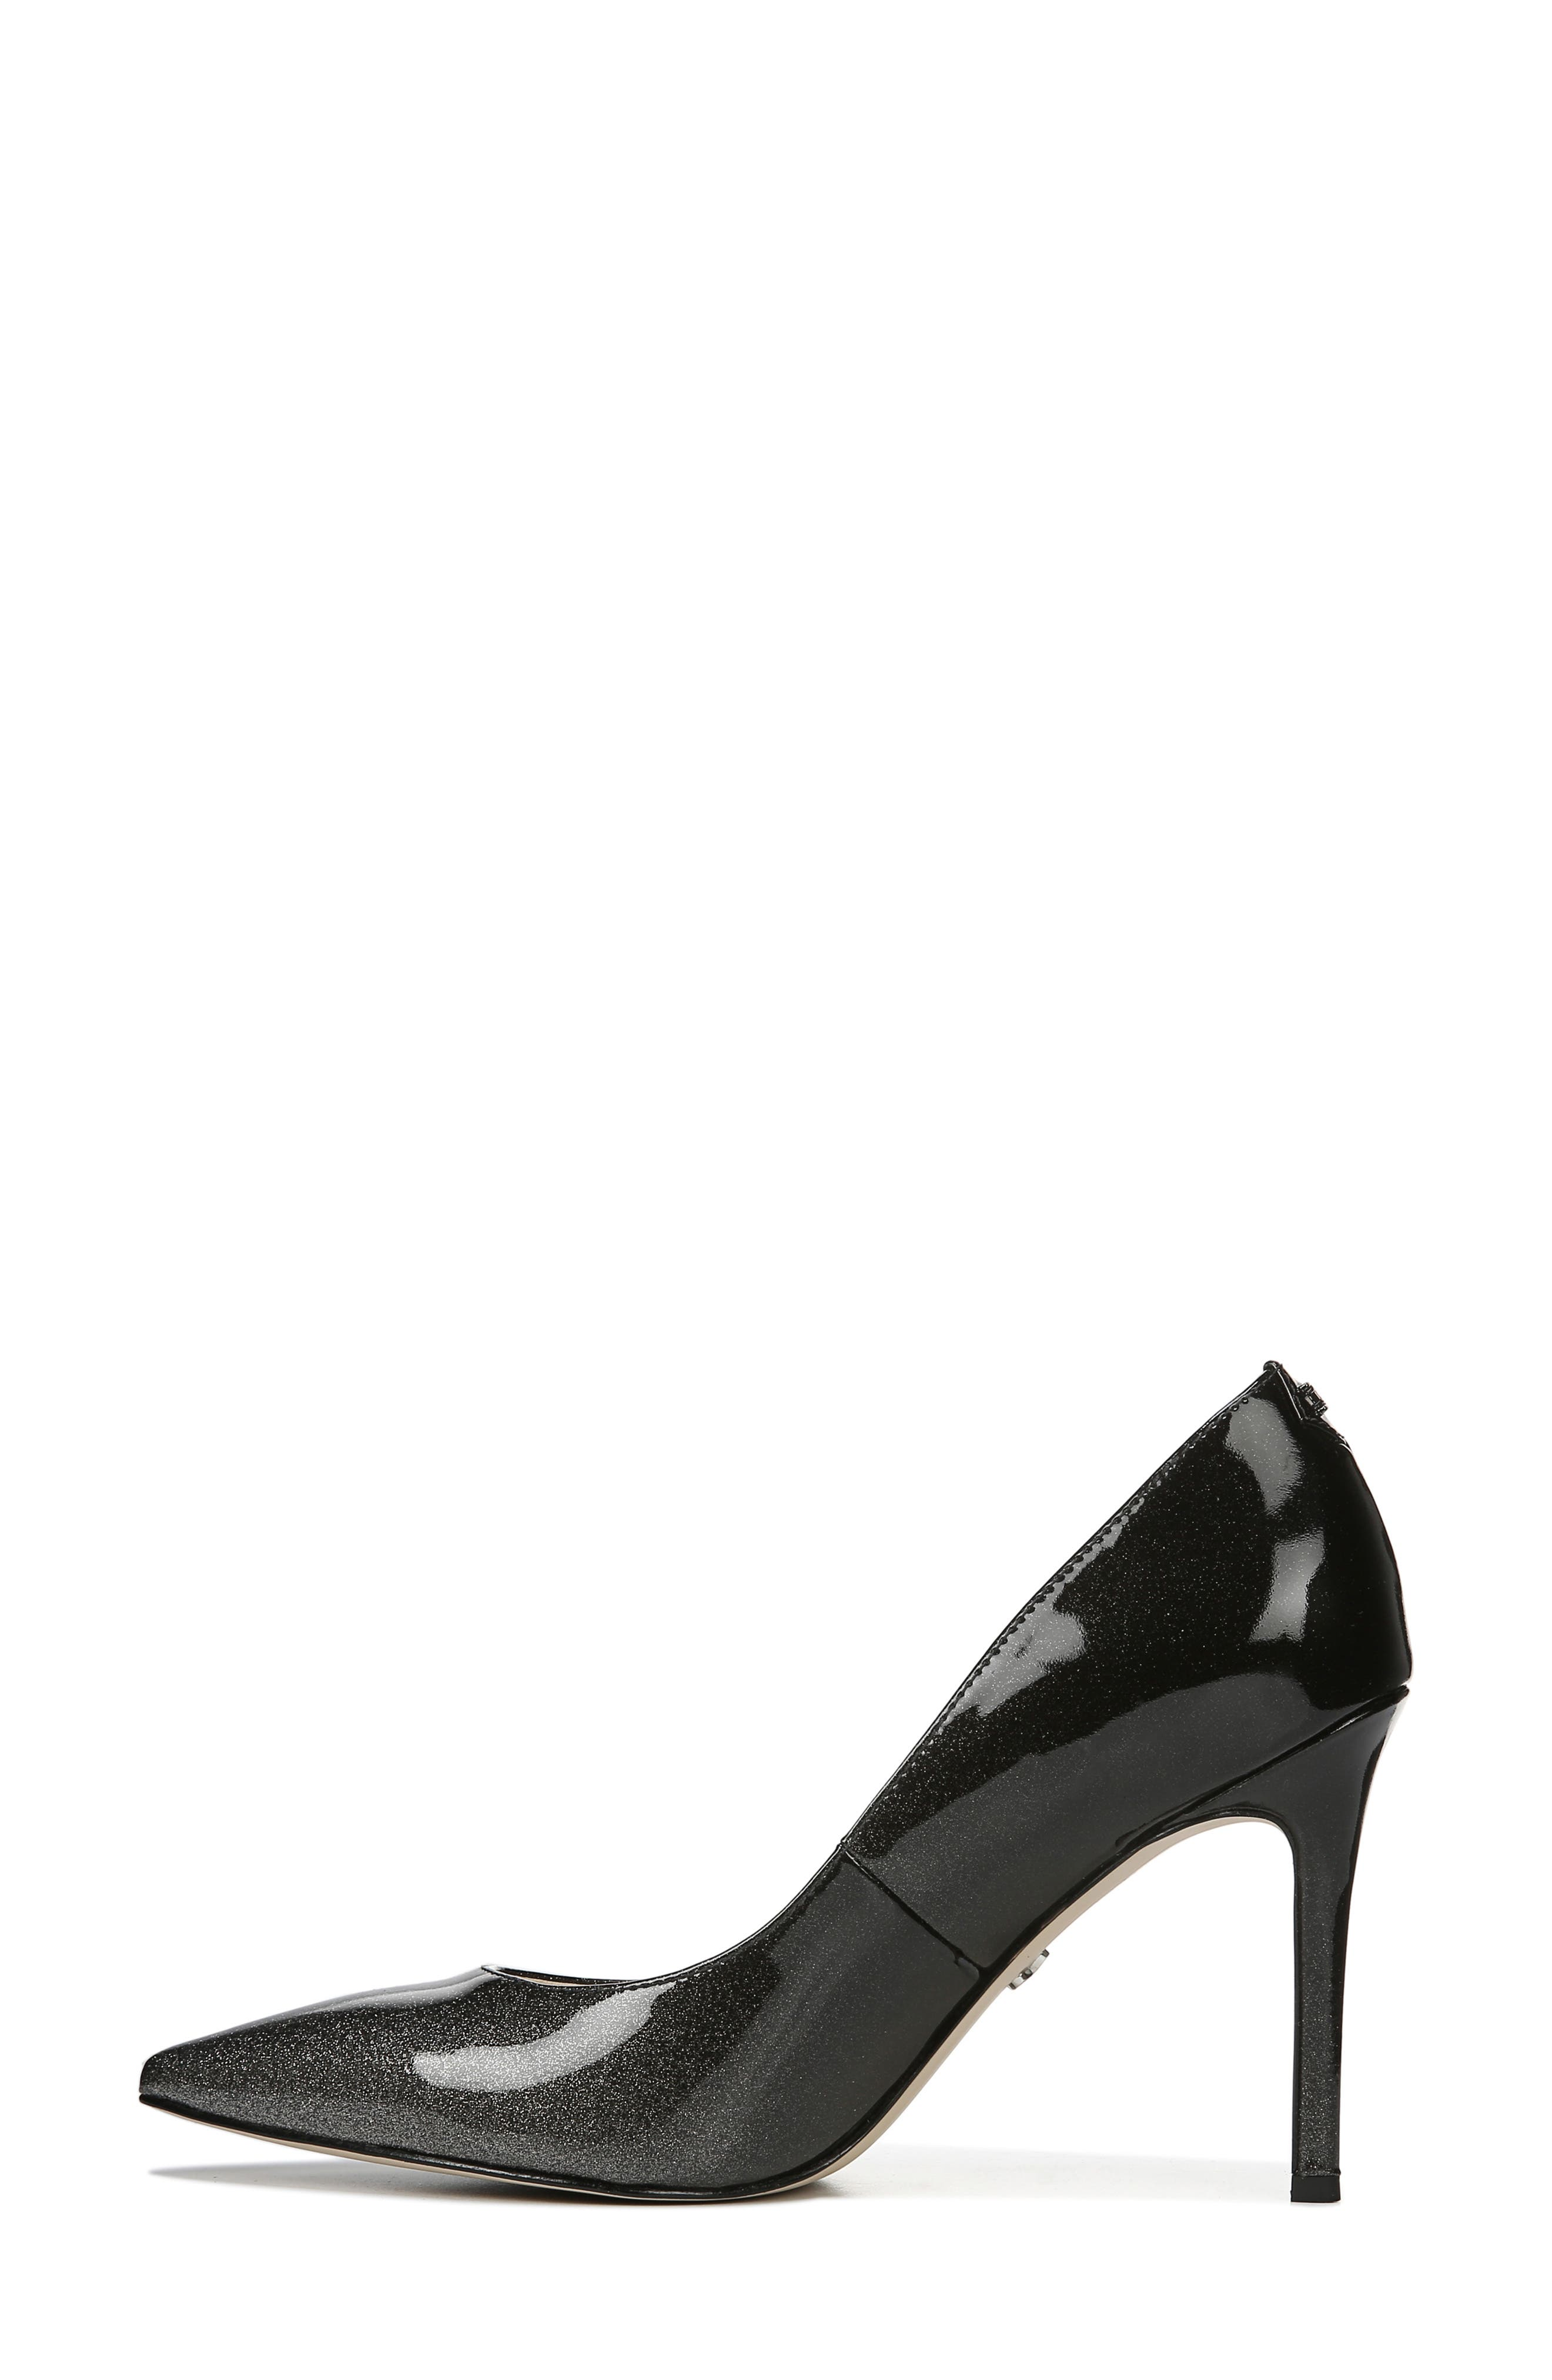 SAM EDELMAN, Hazel Pointy Toe Pump, Alternate thumbnail 8, color, BLACK/ SILVER